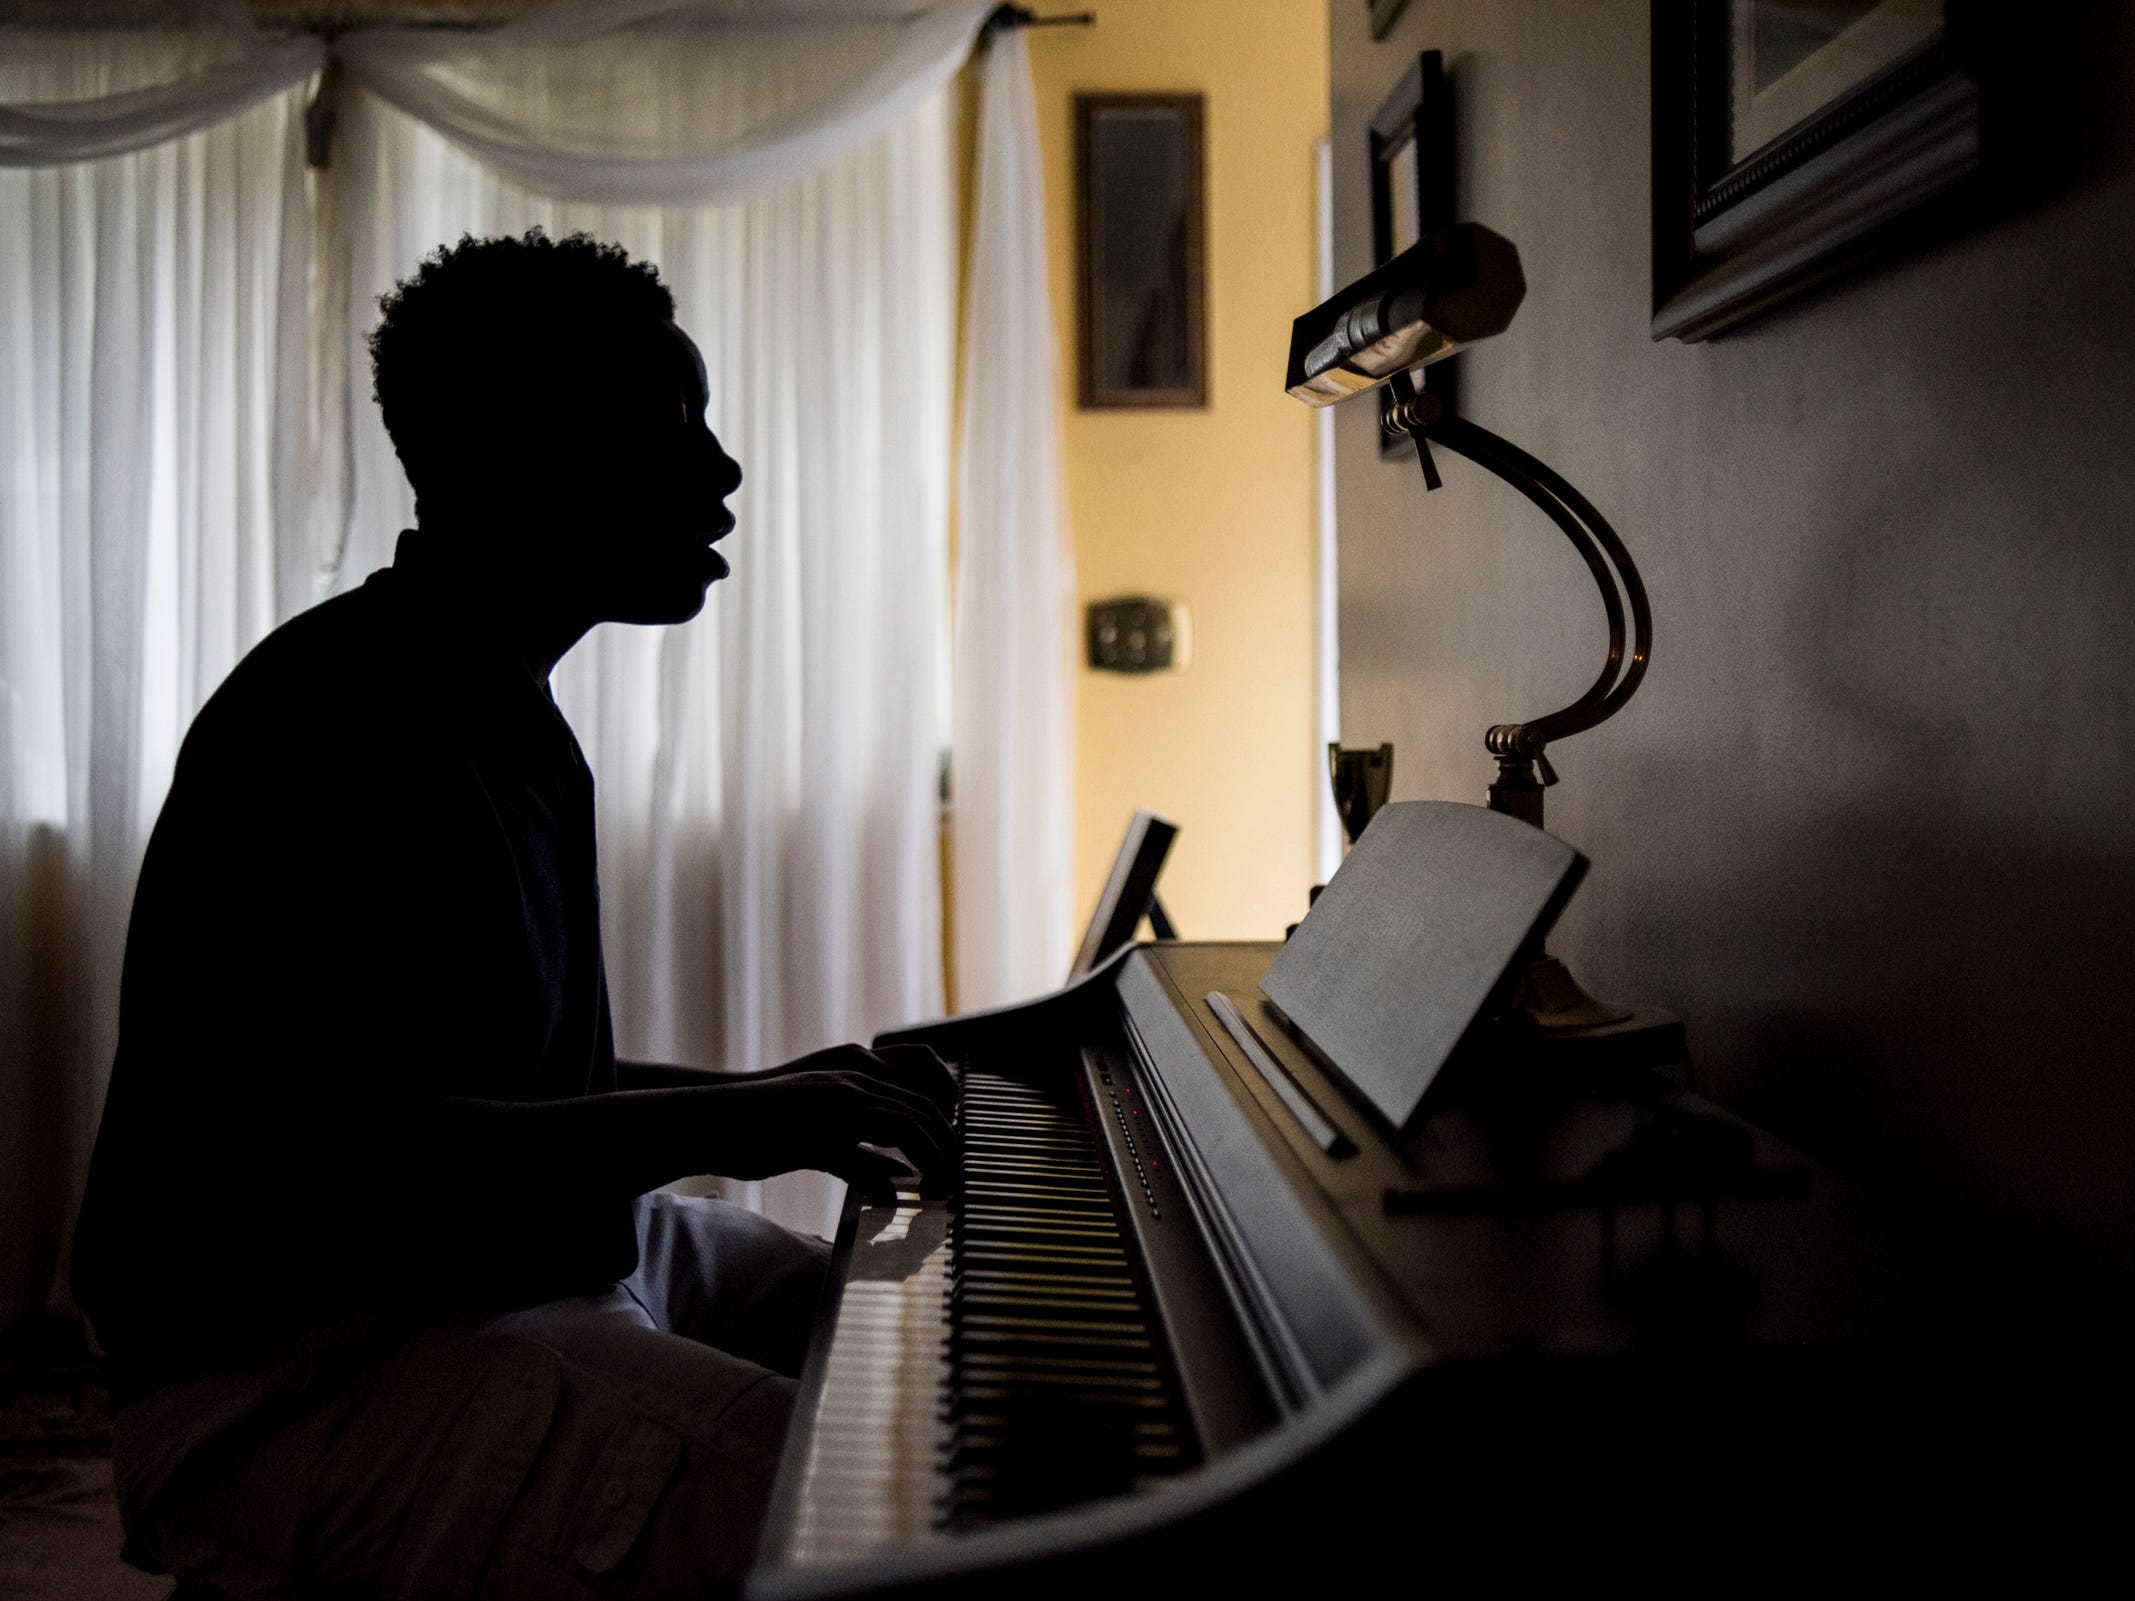 Kemar Williams, 15, a sophomore at Everett High School plays piano Monday evening, Aug. 20, 2018, where he and his two brothers live with their grandmother.